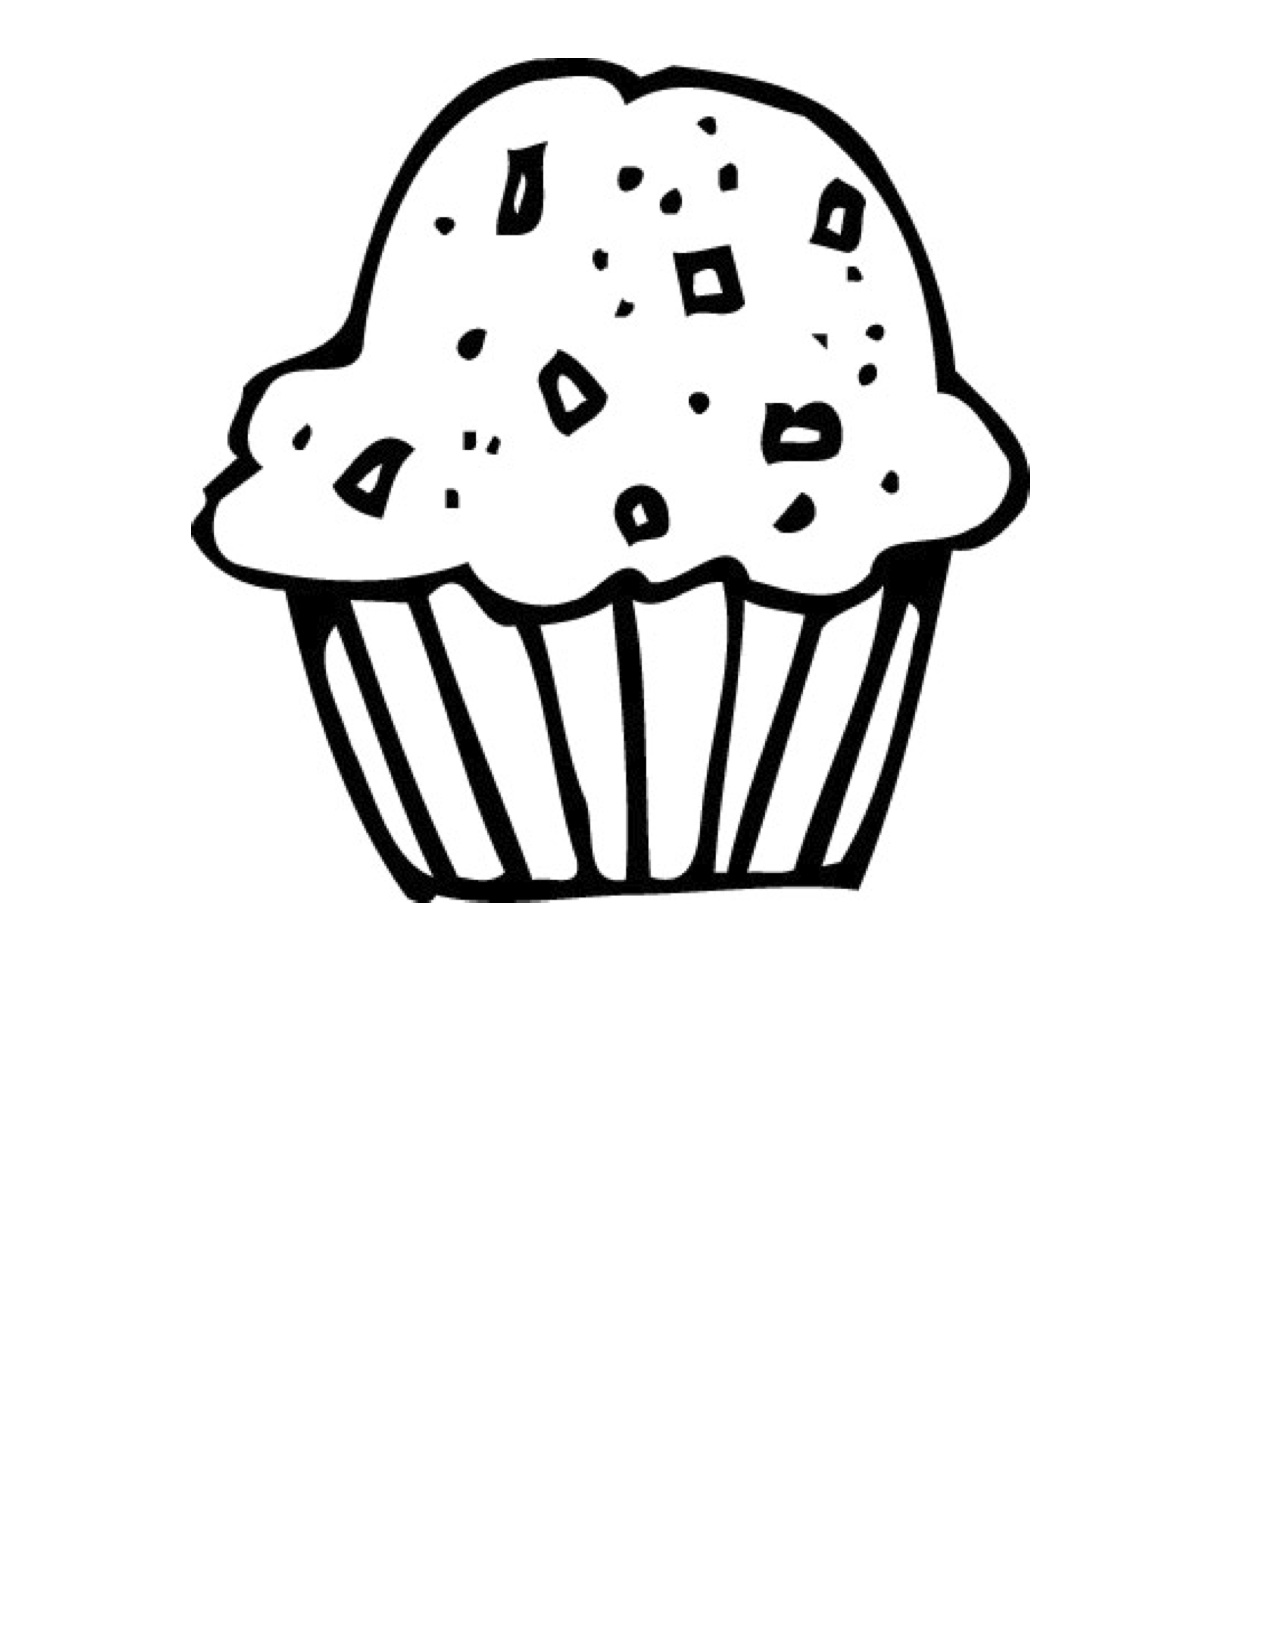 16 Drawing Cupcake Free Cliparts That You Can Download To You Computer